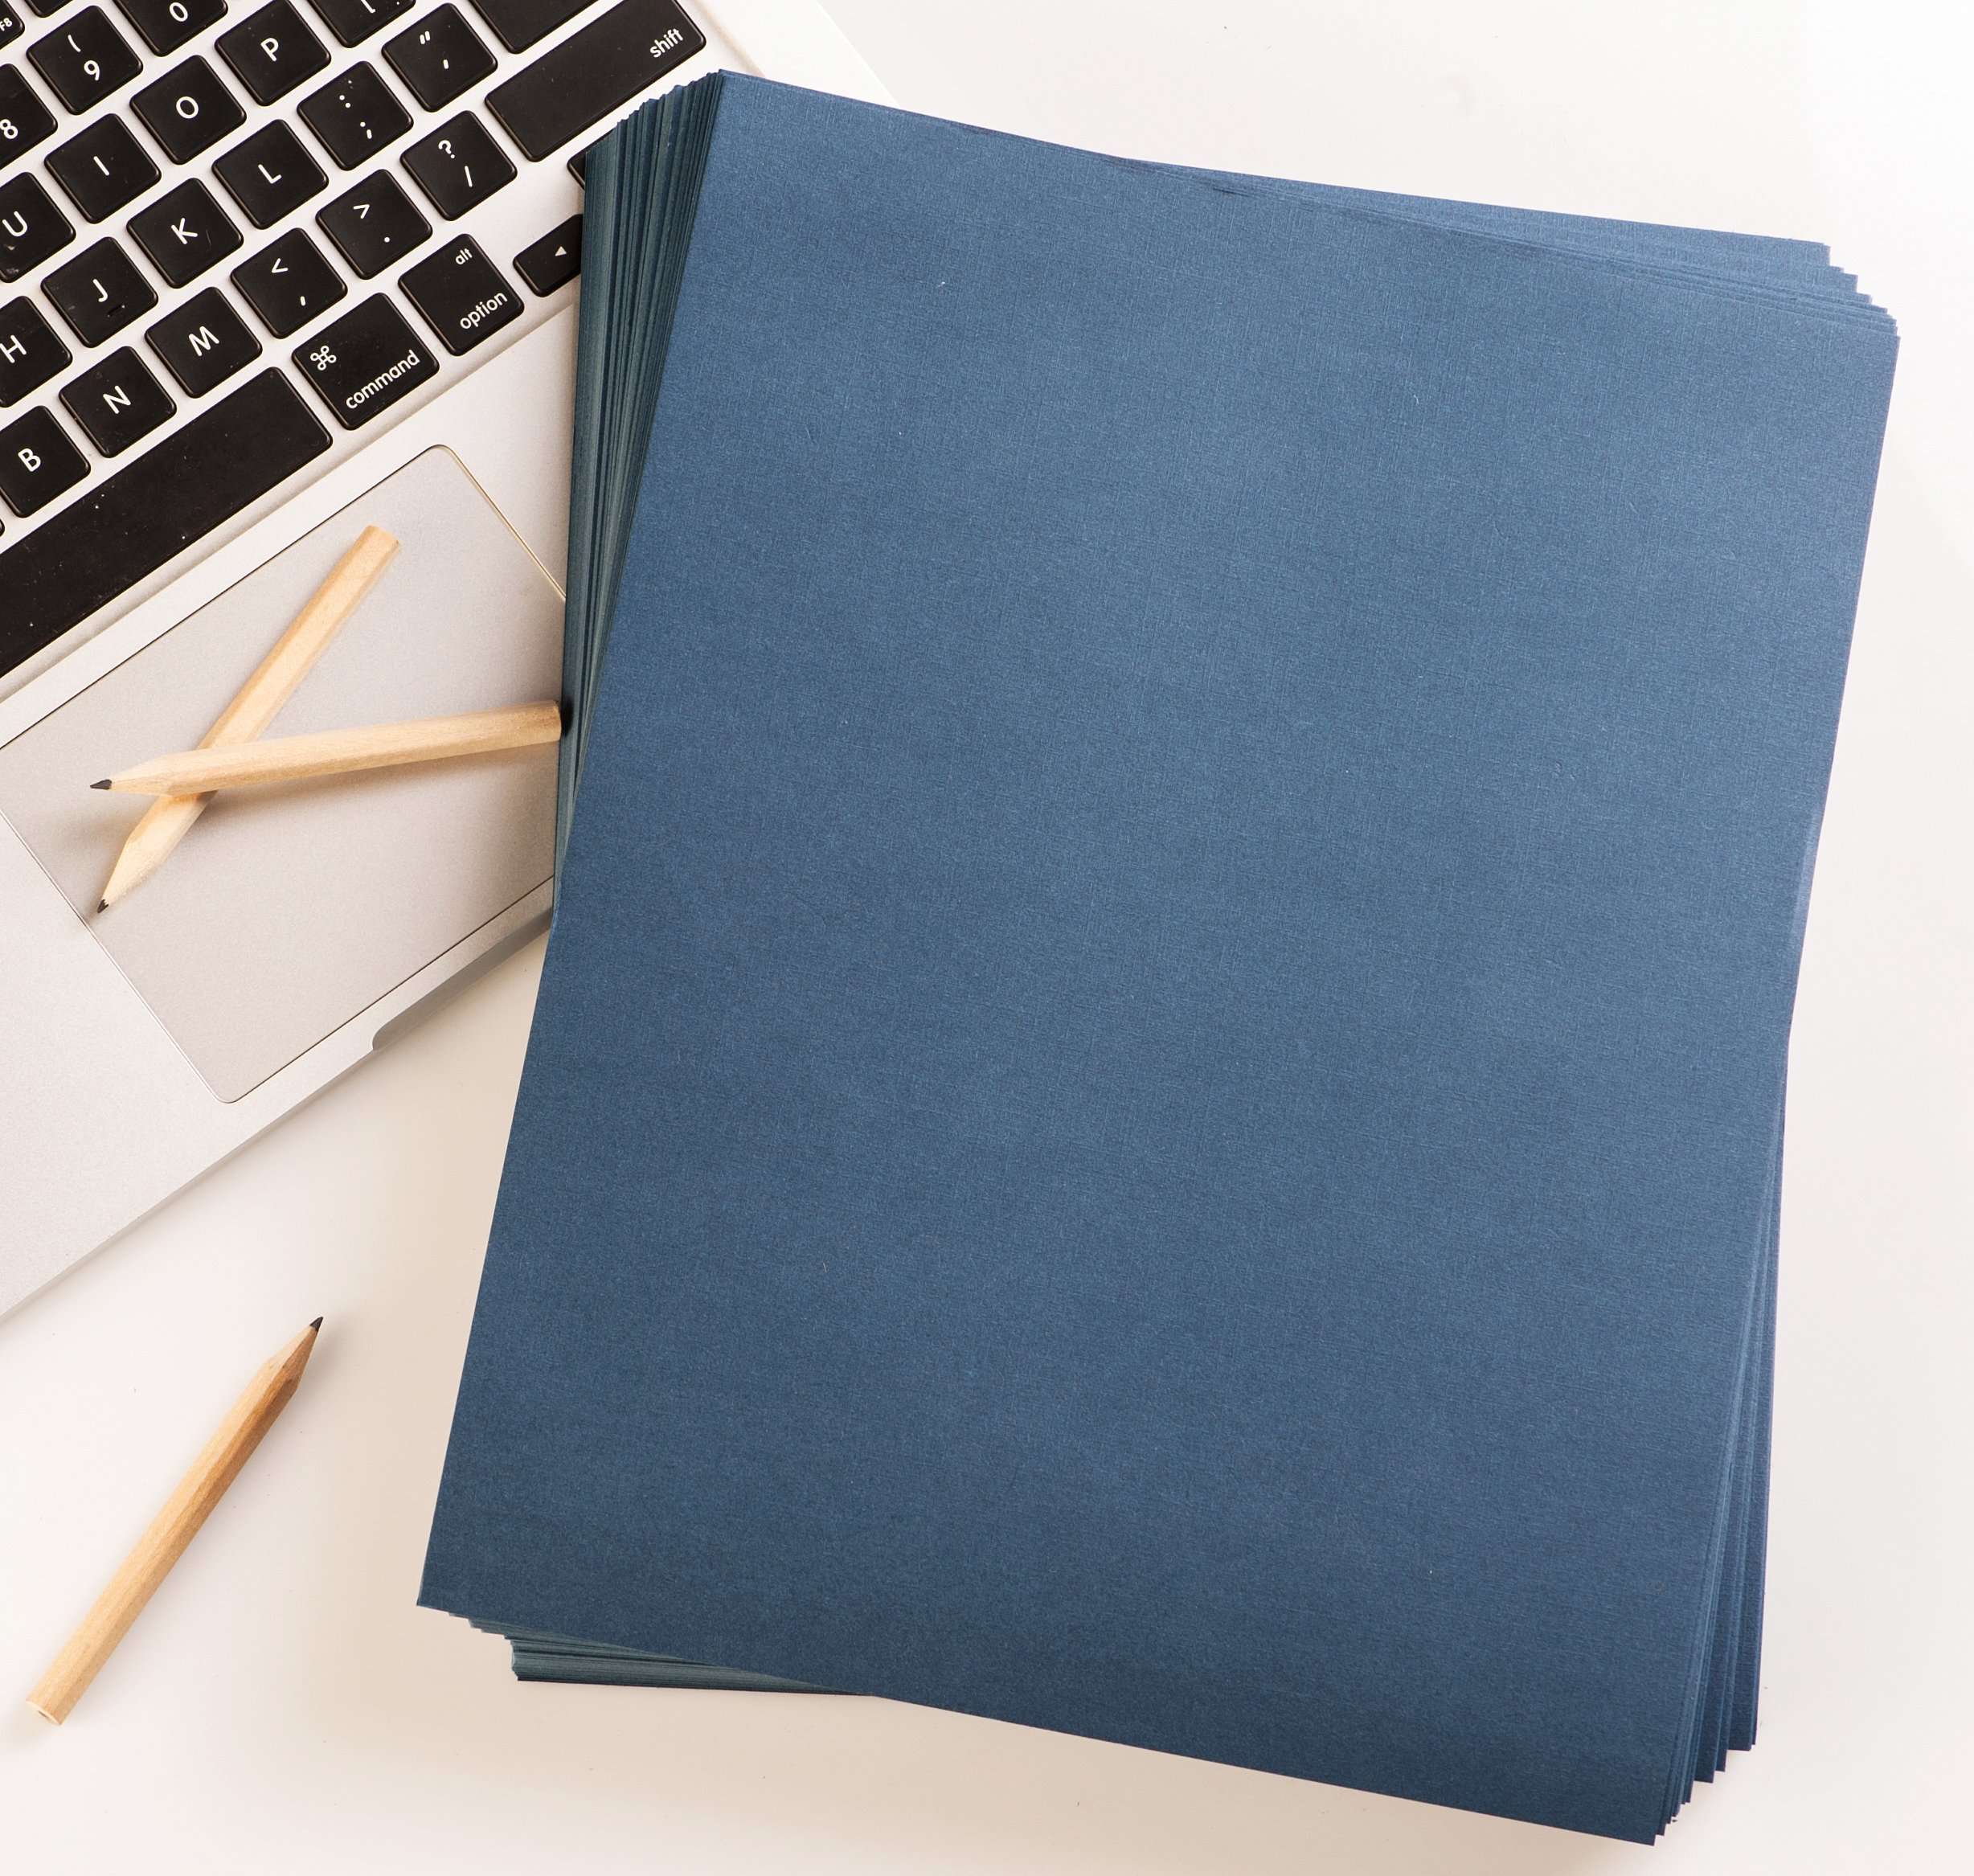 BNC Letter Size Linen Texture Presentation Covers Navy Blue Pack of 100 by BNC Office Supply (Image #6)